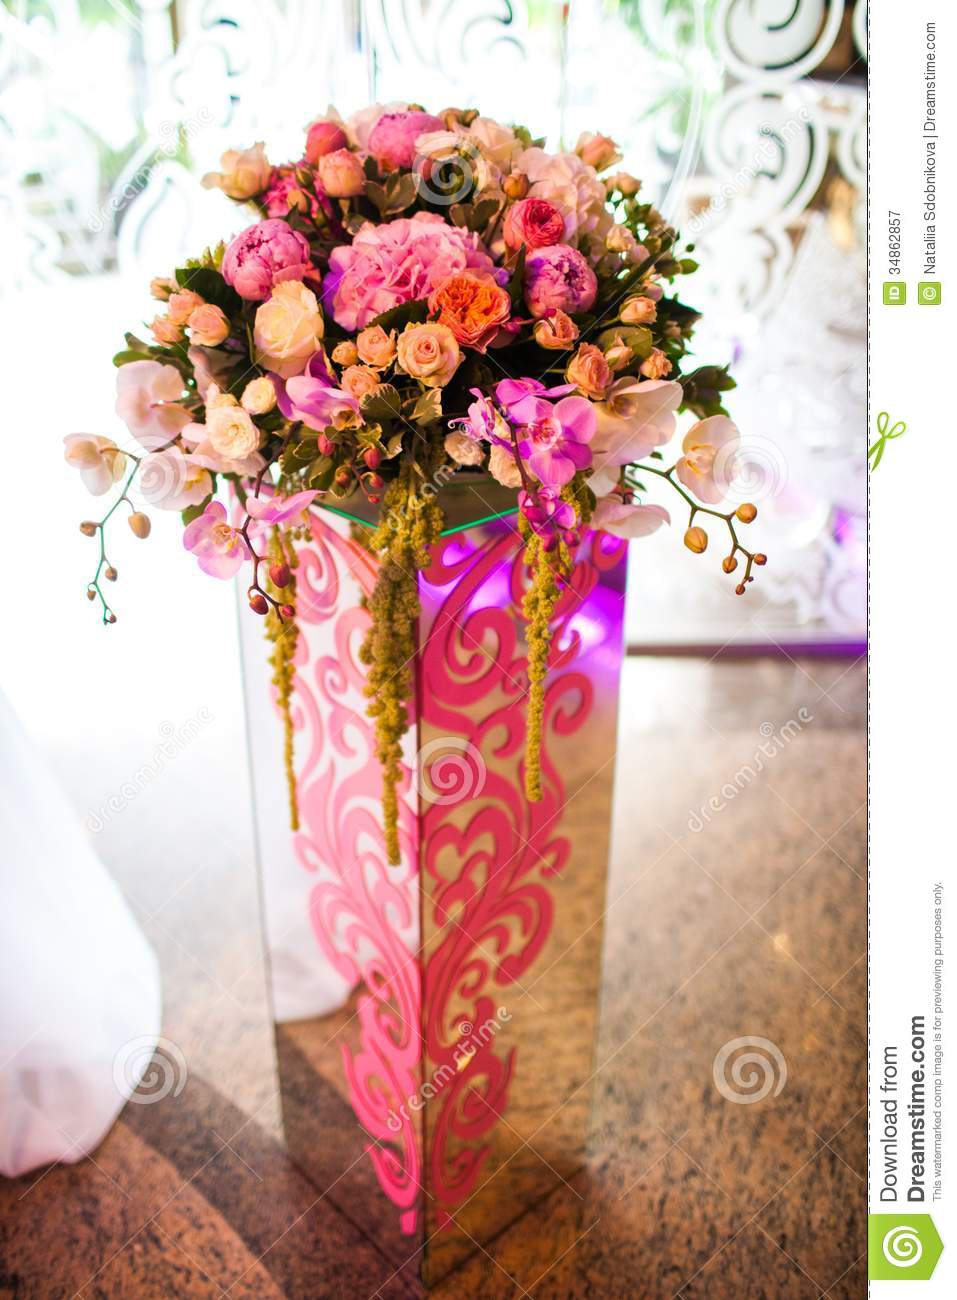 Flowers in a vase stock image image of blossom bloom 34862857 flowers in a vase reviewsmspy